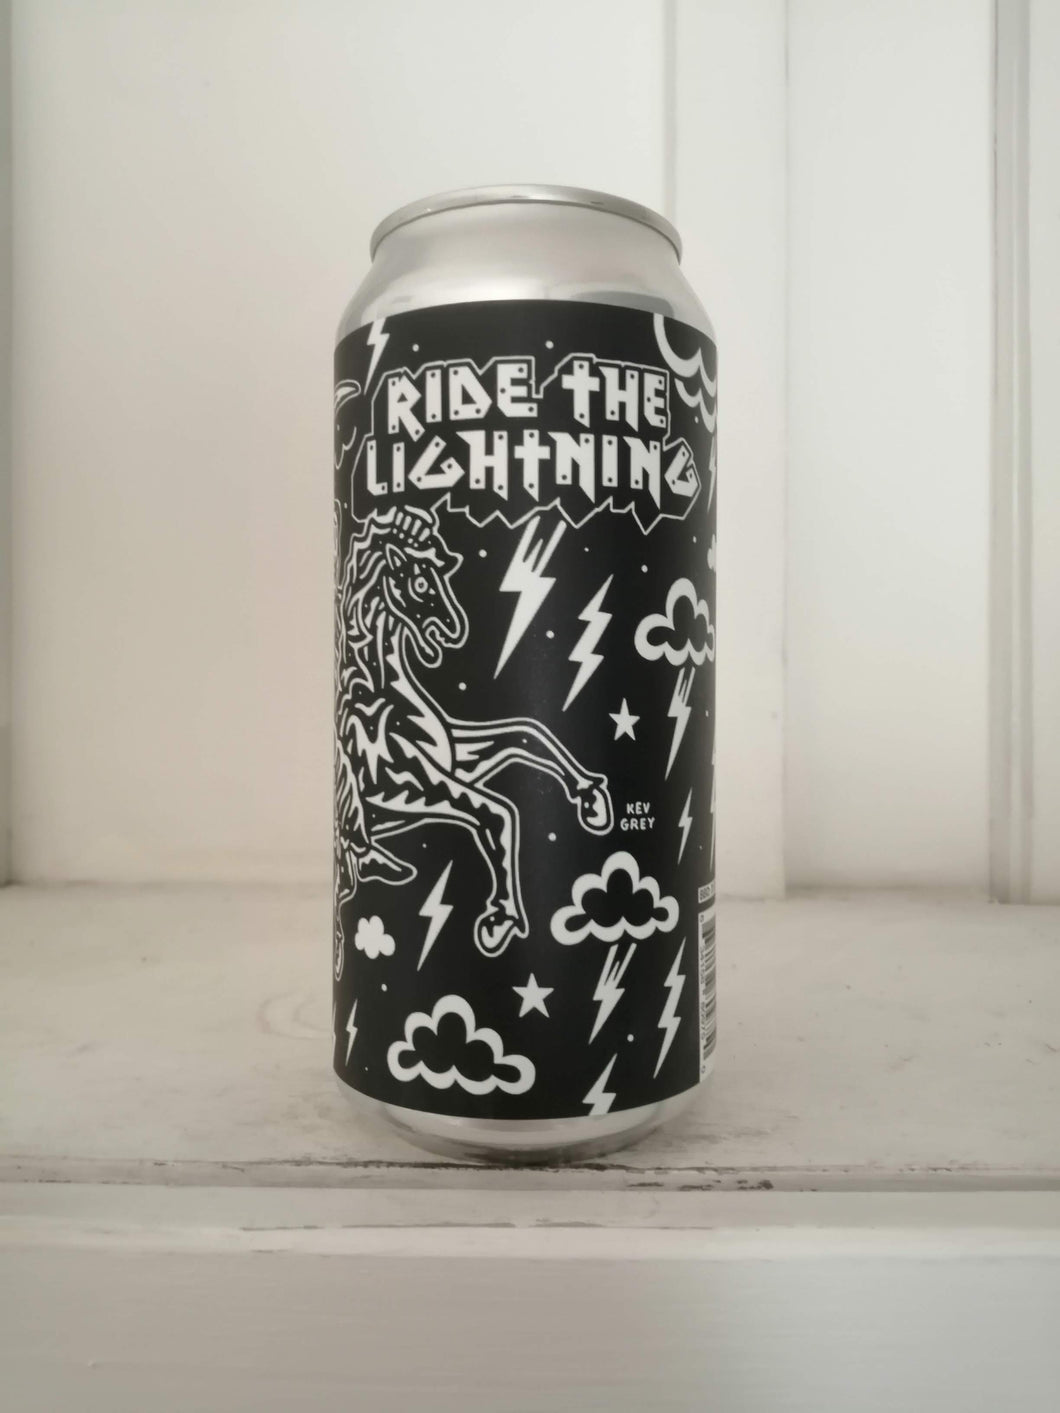 Black Iris Ride The Lightning 4.2% (440ml can)